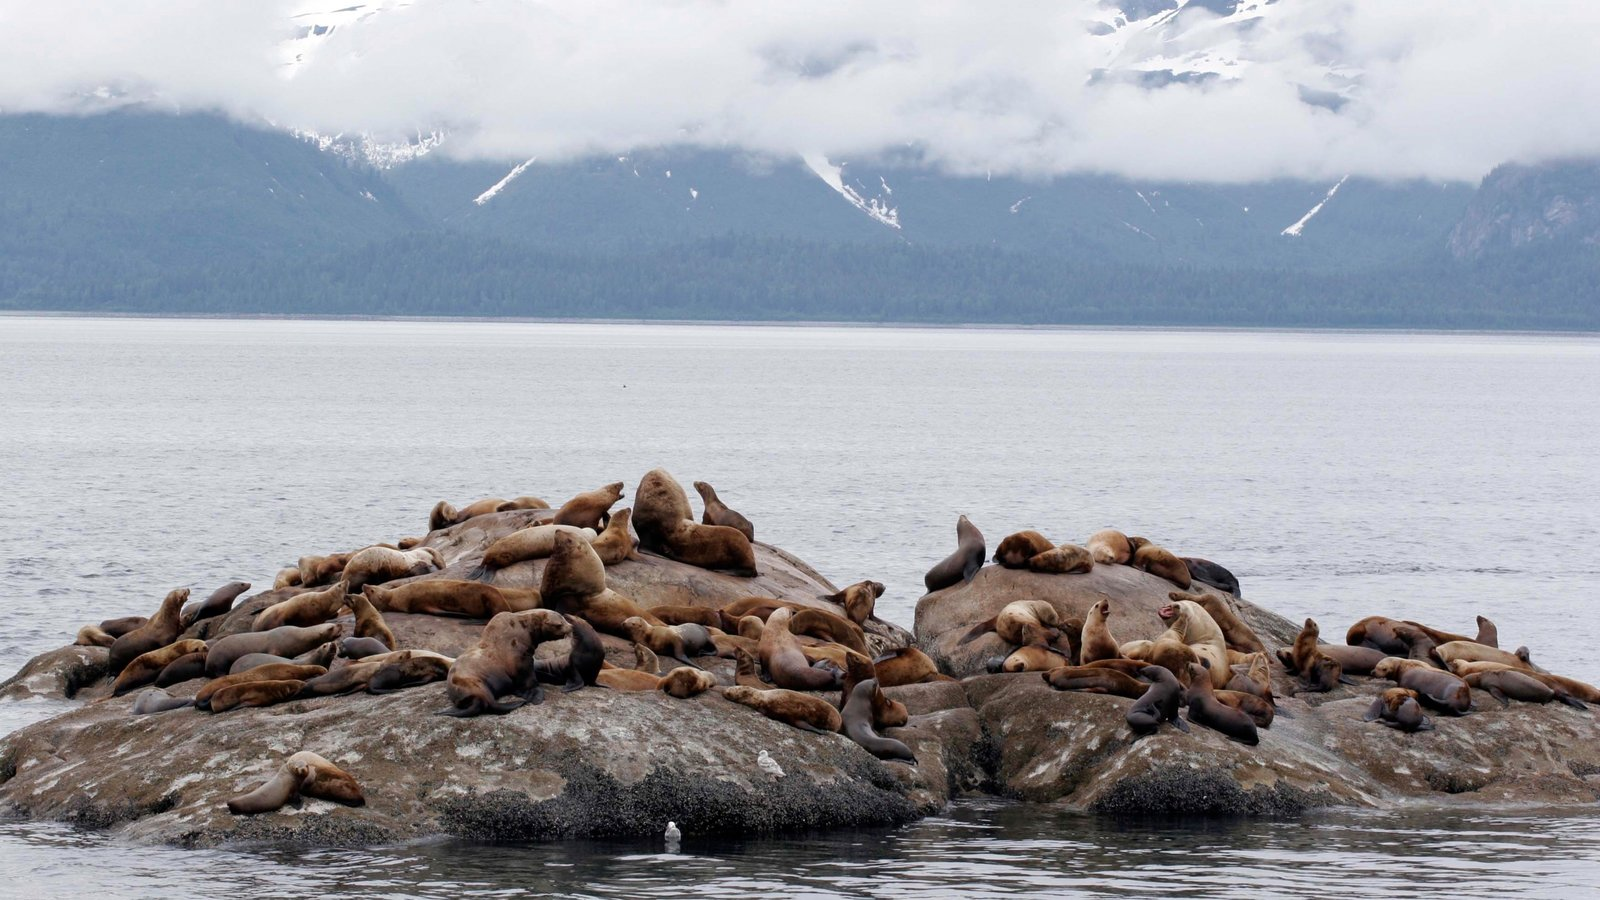 Glacier Bay National Park which includes marine life, rugged coastline and a bay or harbor